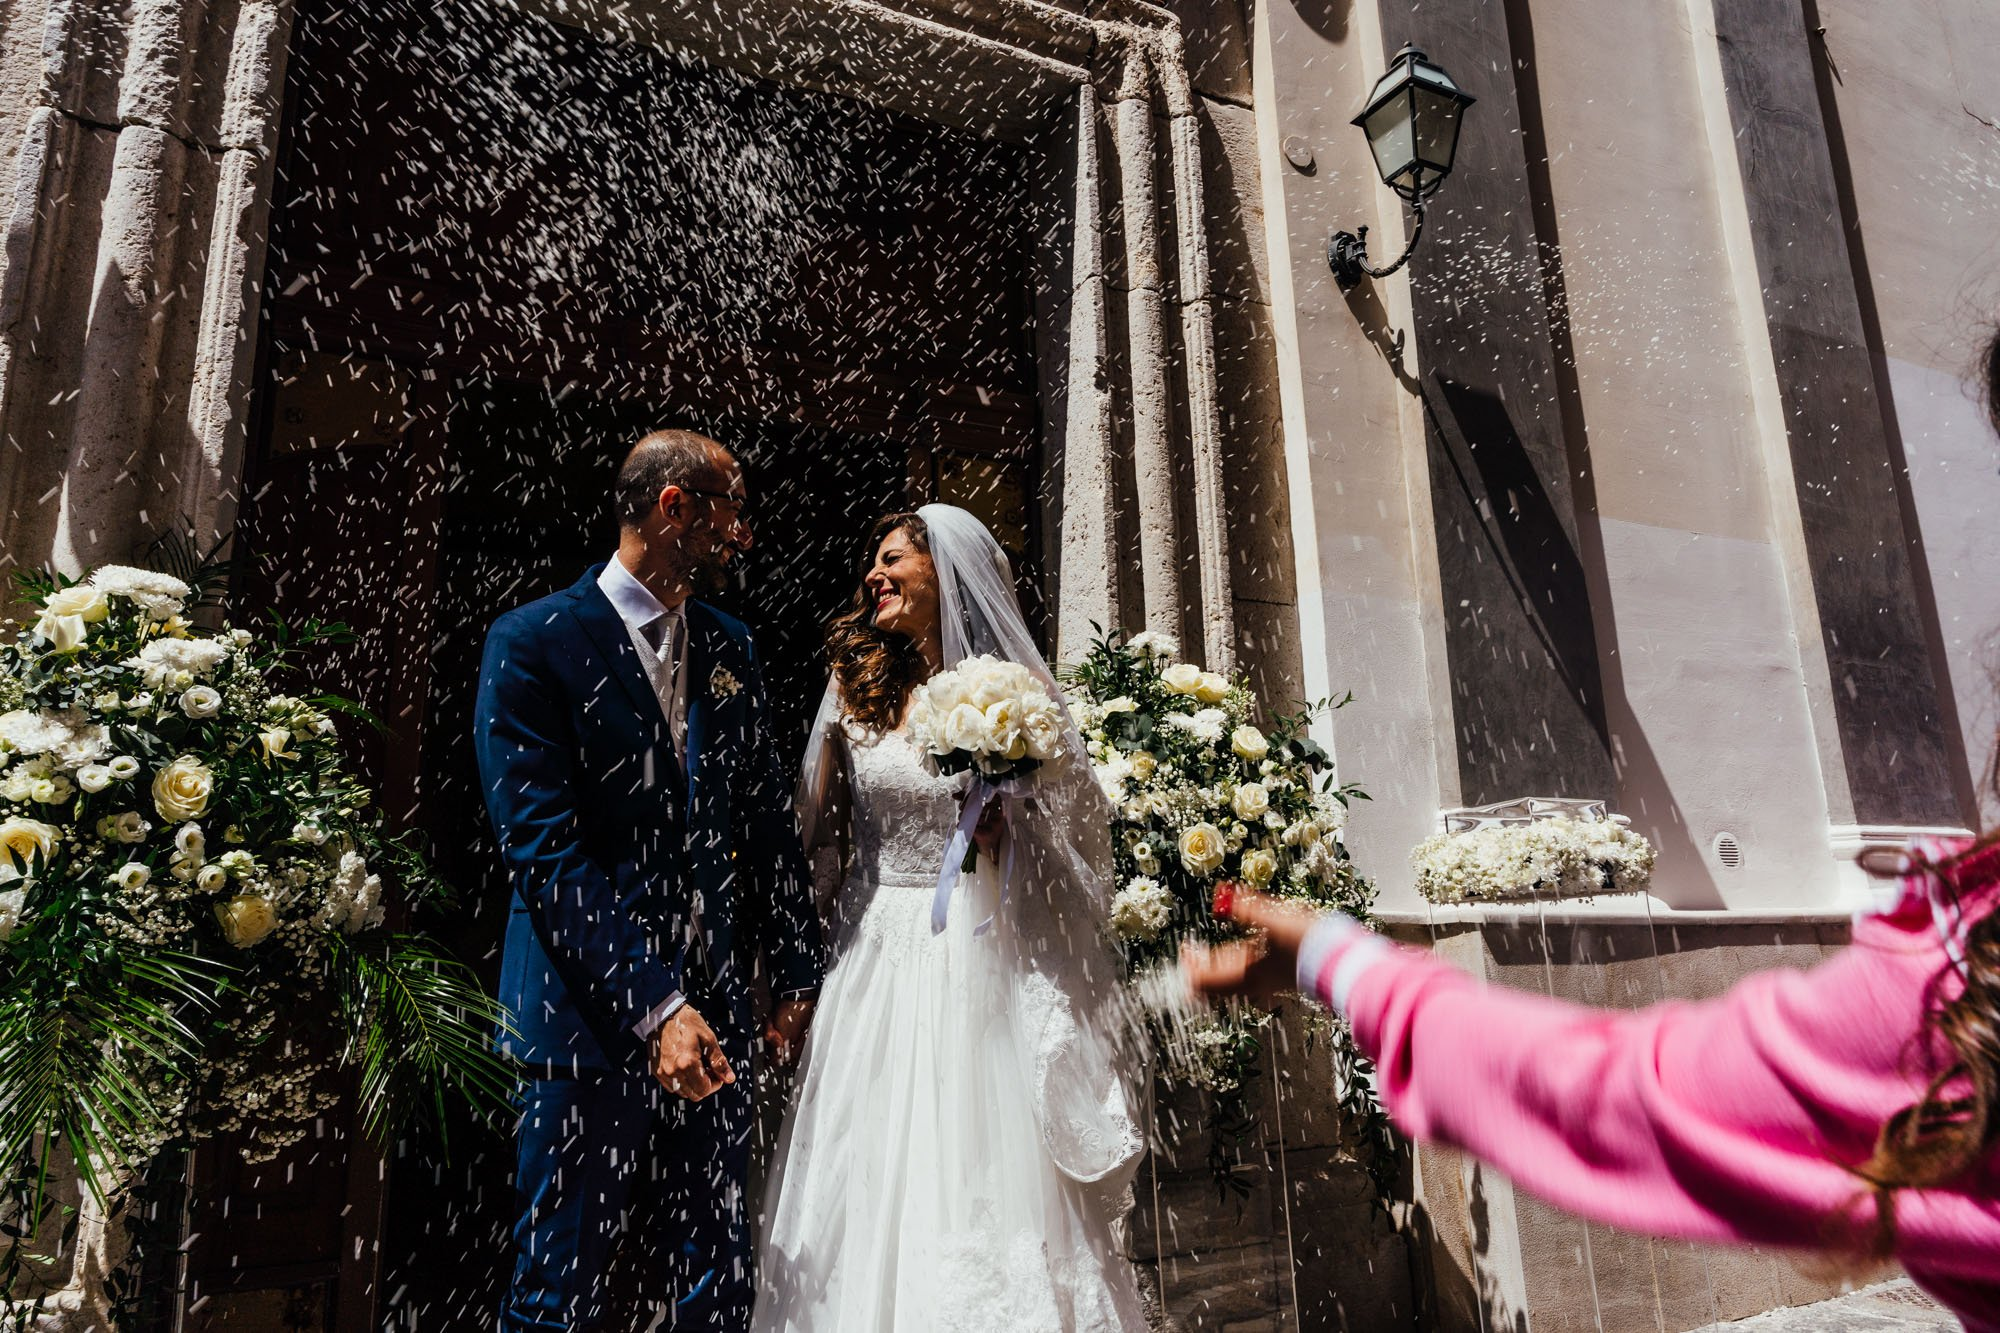 wedding-in-italy-mary-mimmo-32